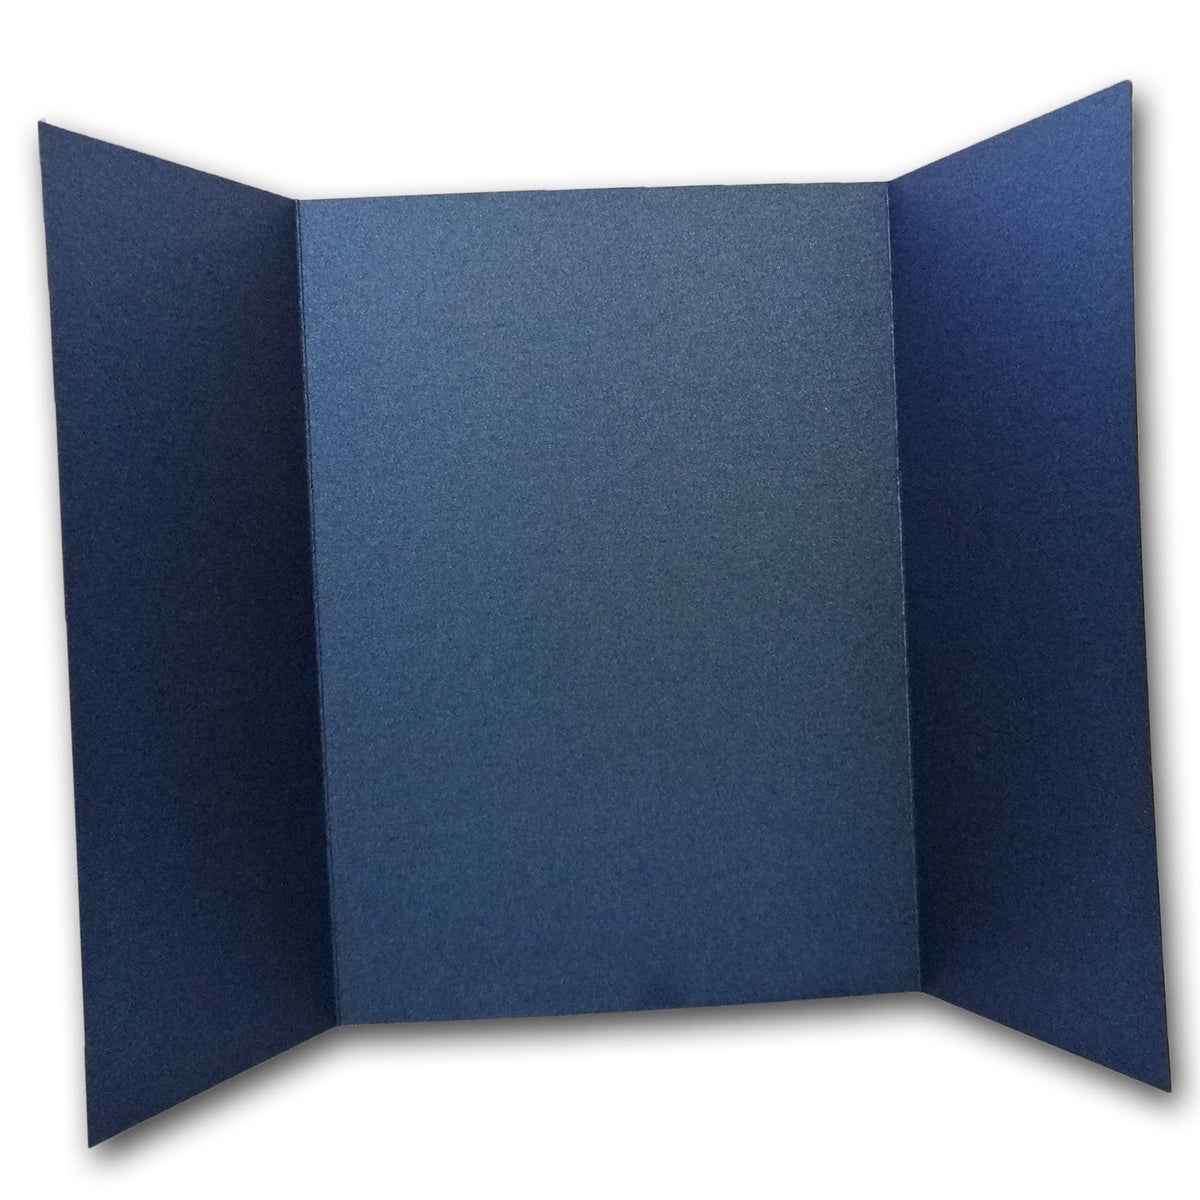 Shimmery Navy 5x7 Gatefold Discount Card Stock DIY Invitations